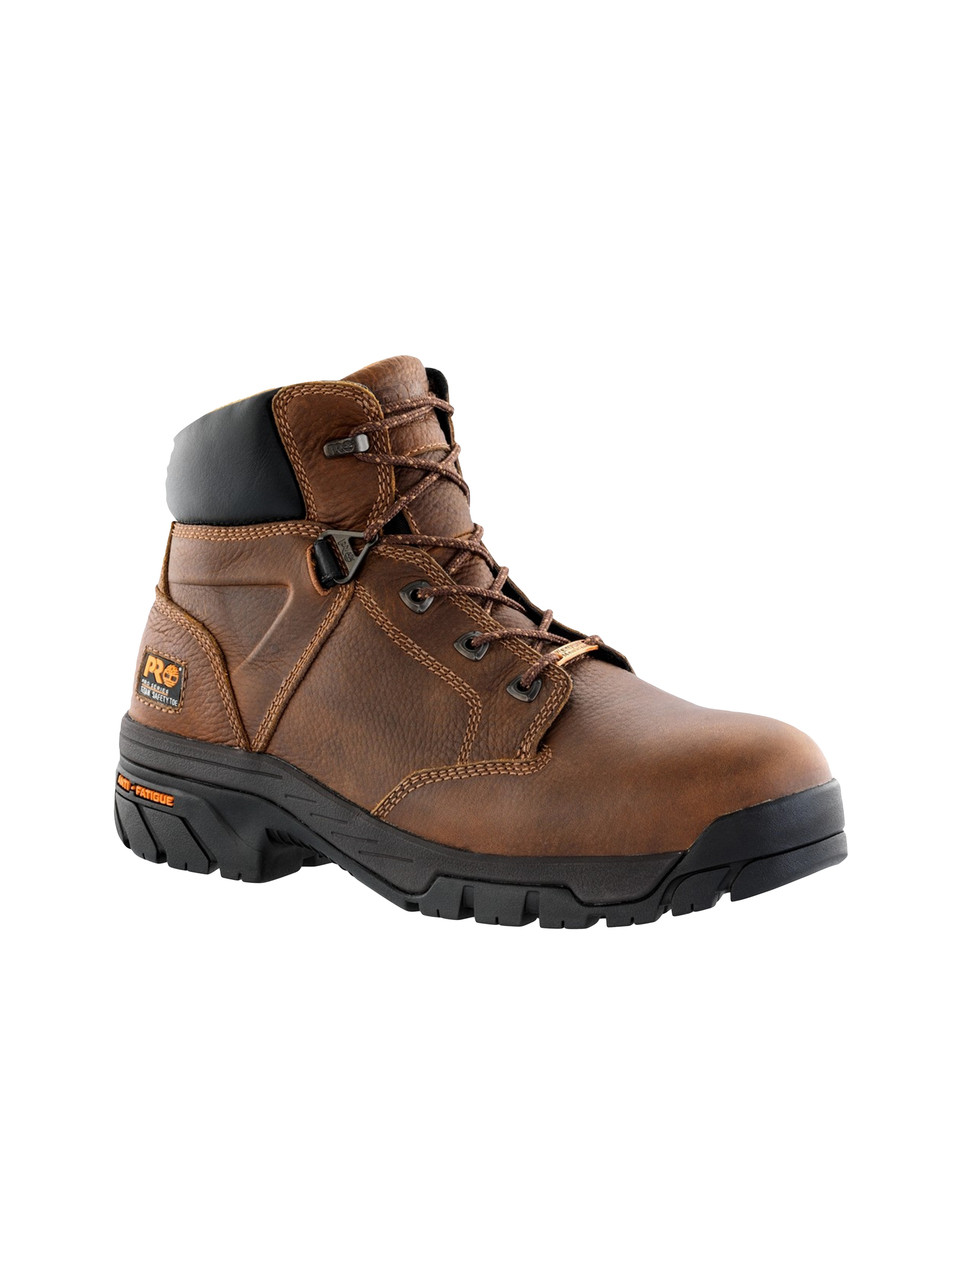 468ac00a0cc Timberland Mens Helix Safety Toe Work Boots - 85594